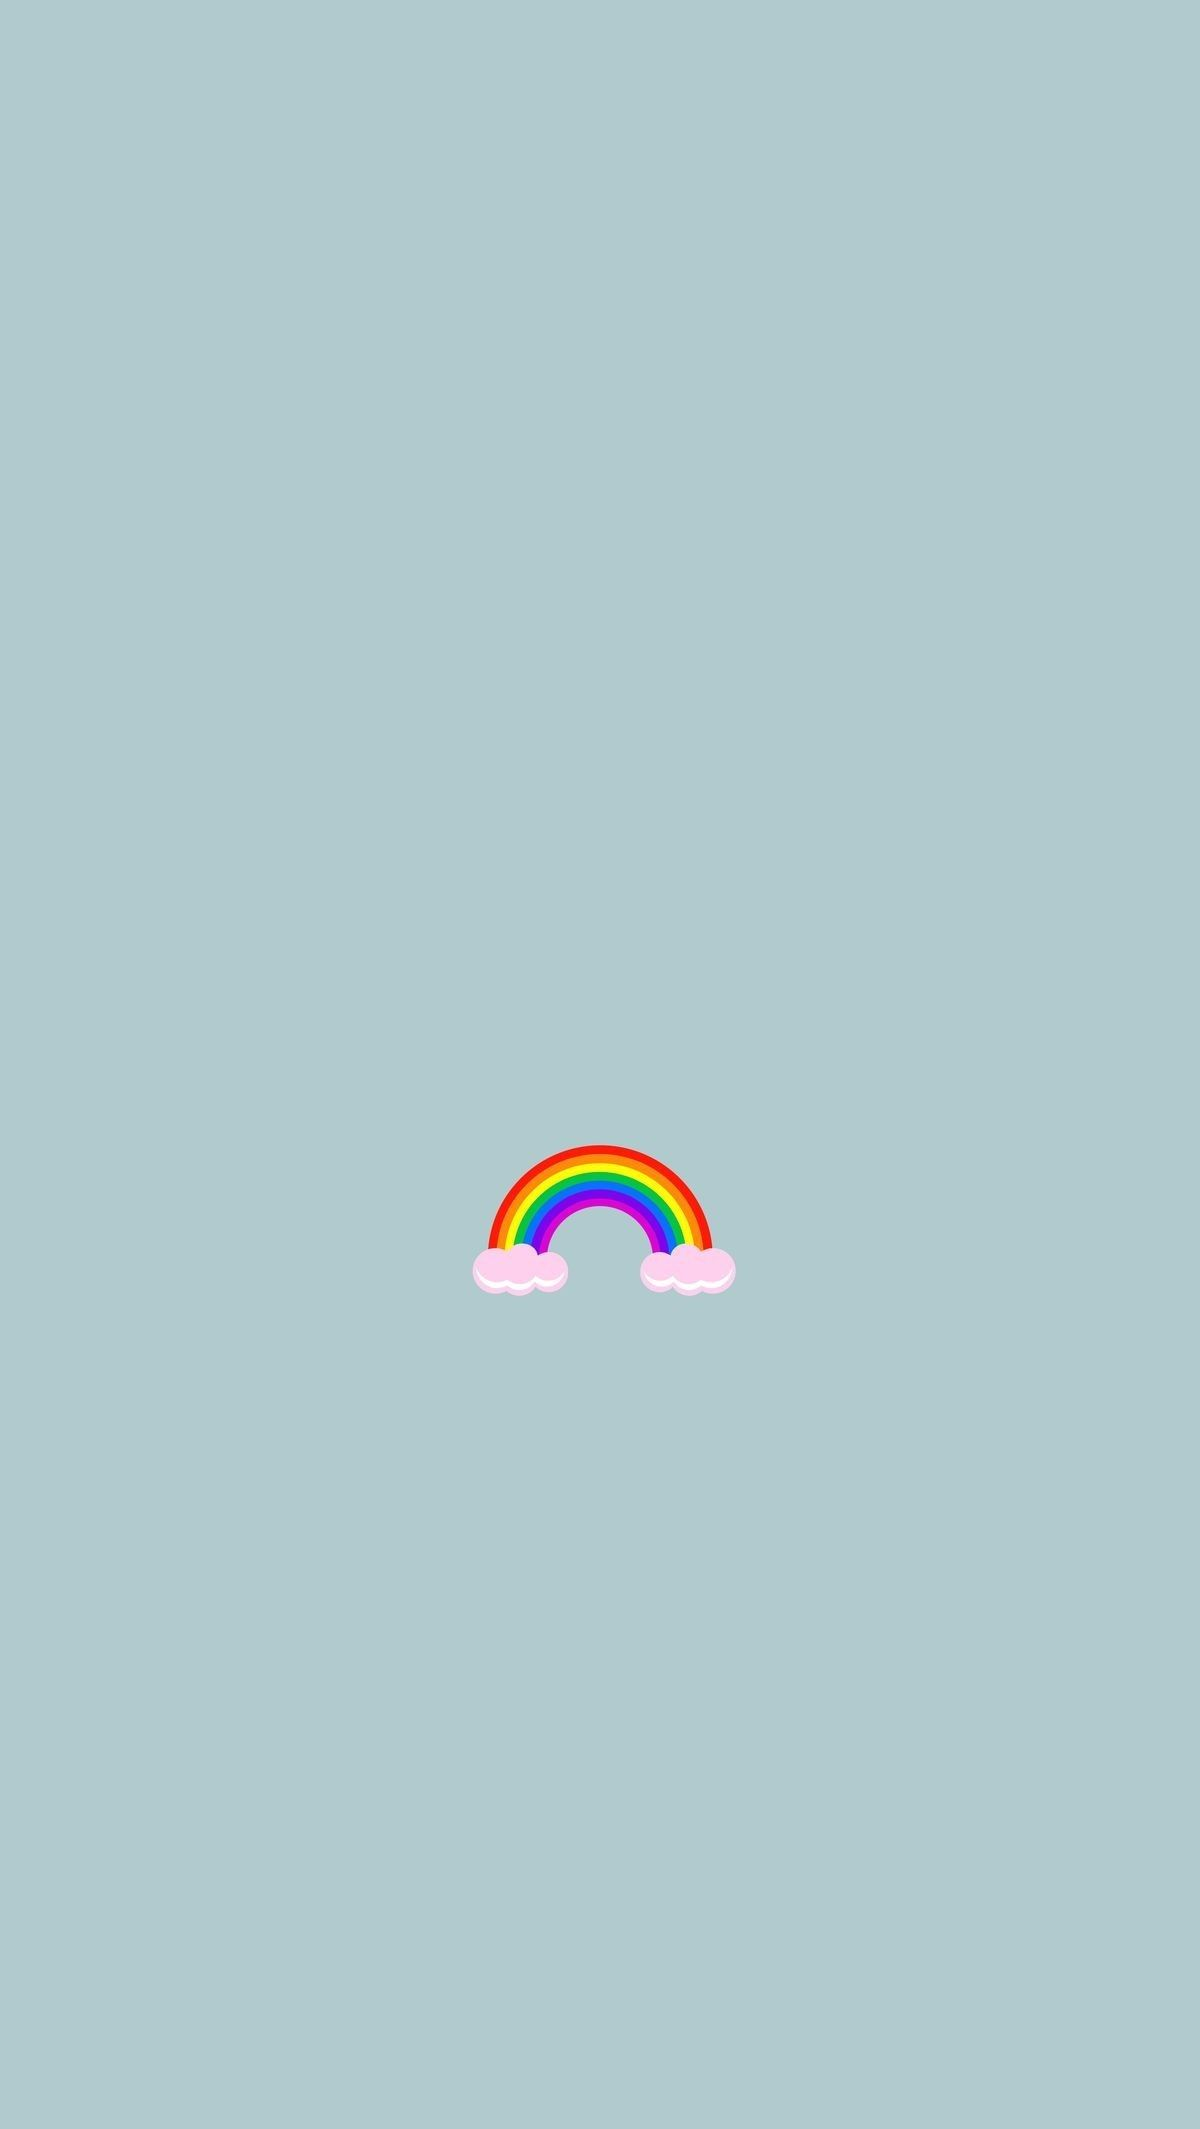 Siga Nos No Facebook Wallpaper In 2019 Emoji Wallpaper Rainbow